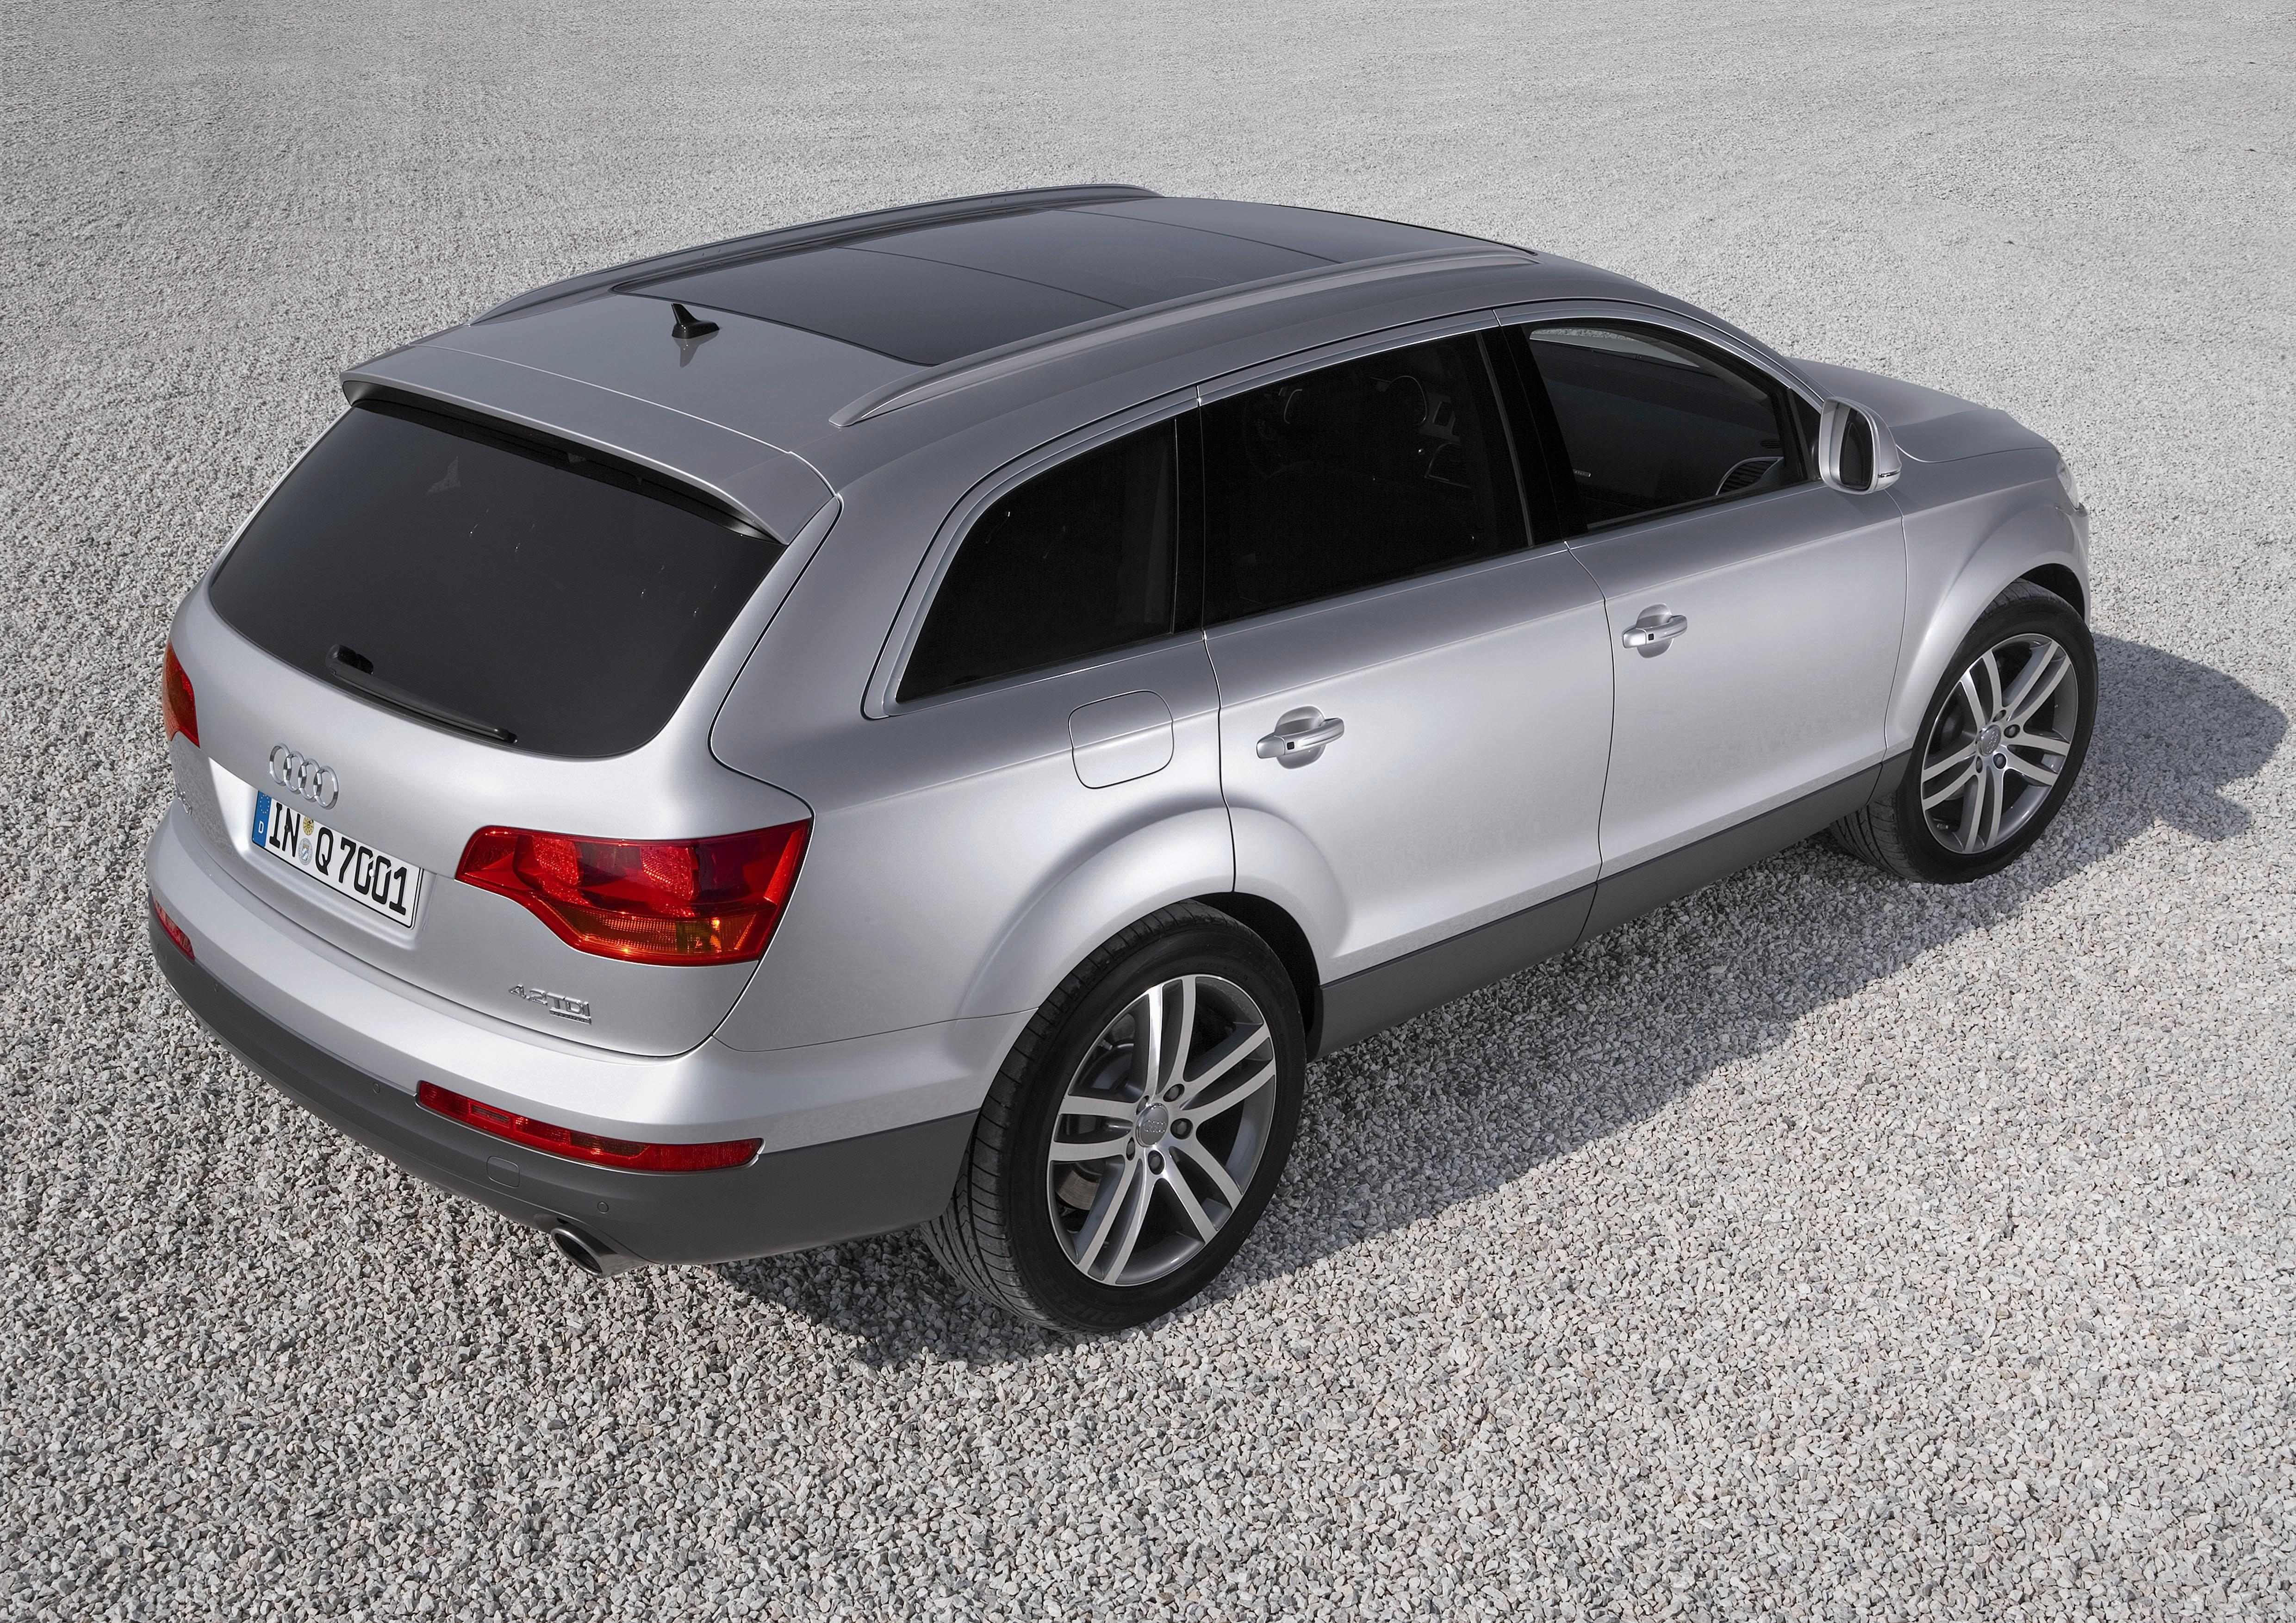 2007 audi q7 4 2 tdi gallery 166686 top speed. Black Bedroom Furniture Sets. Home Design Ideas